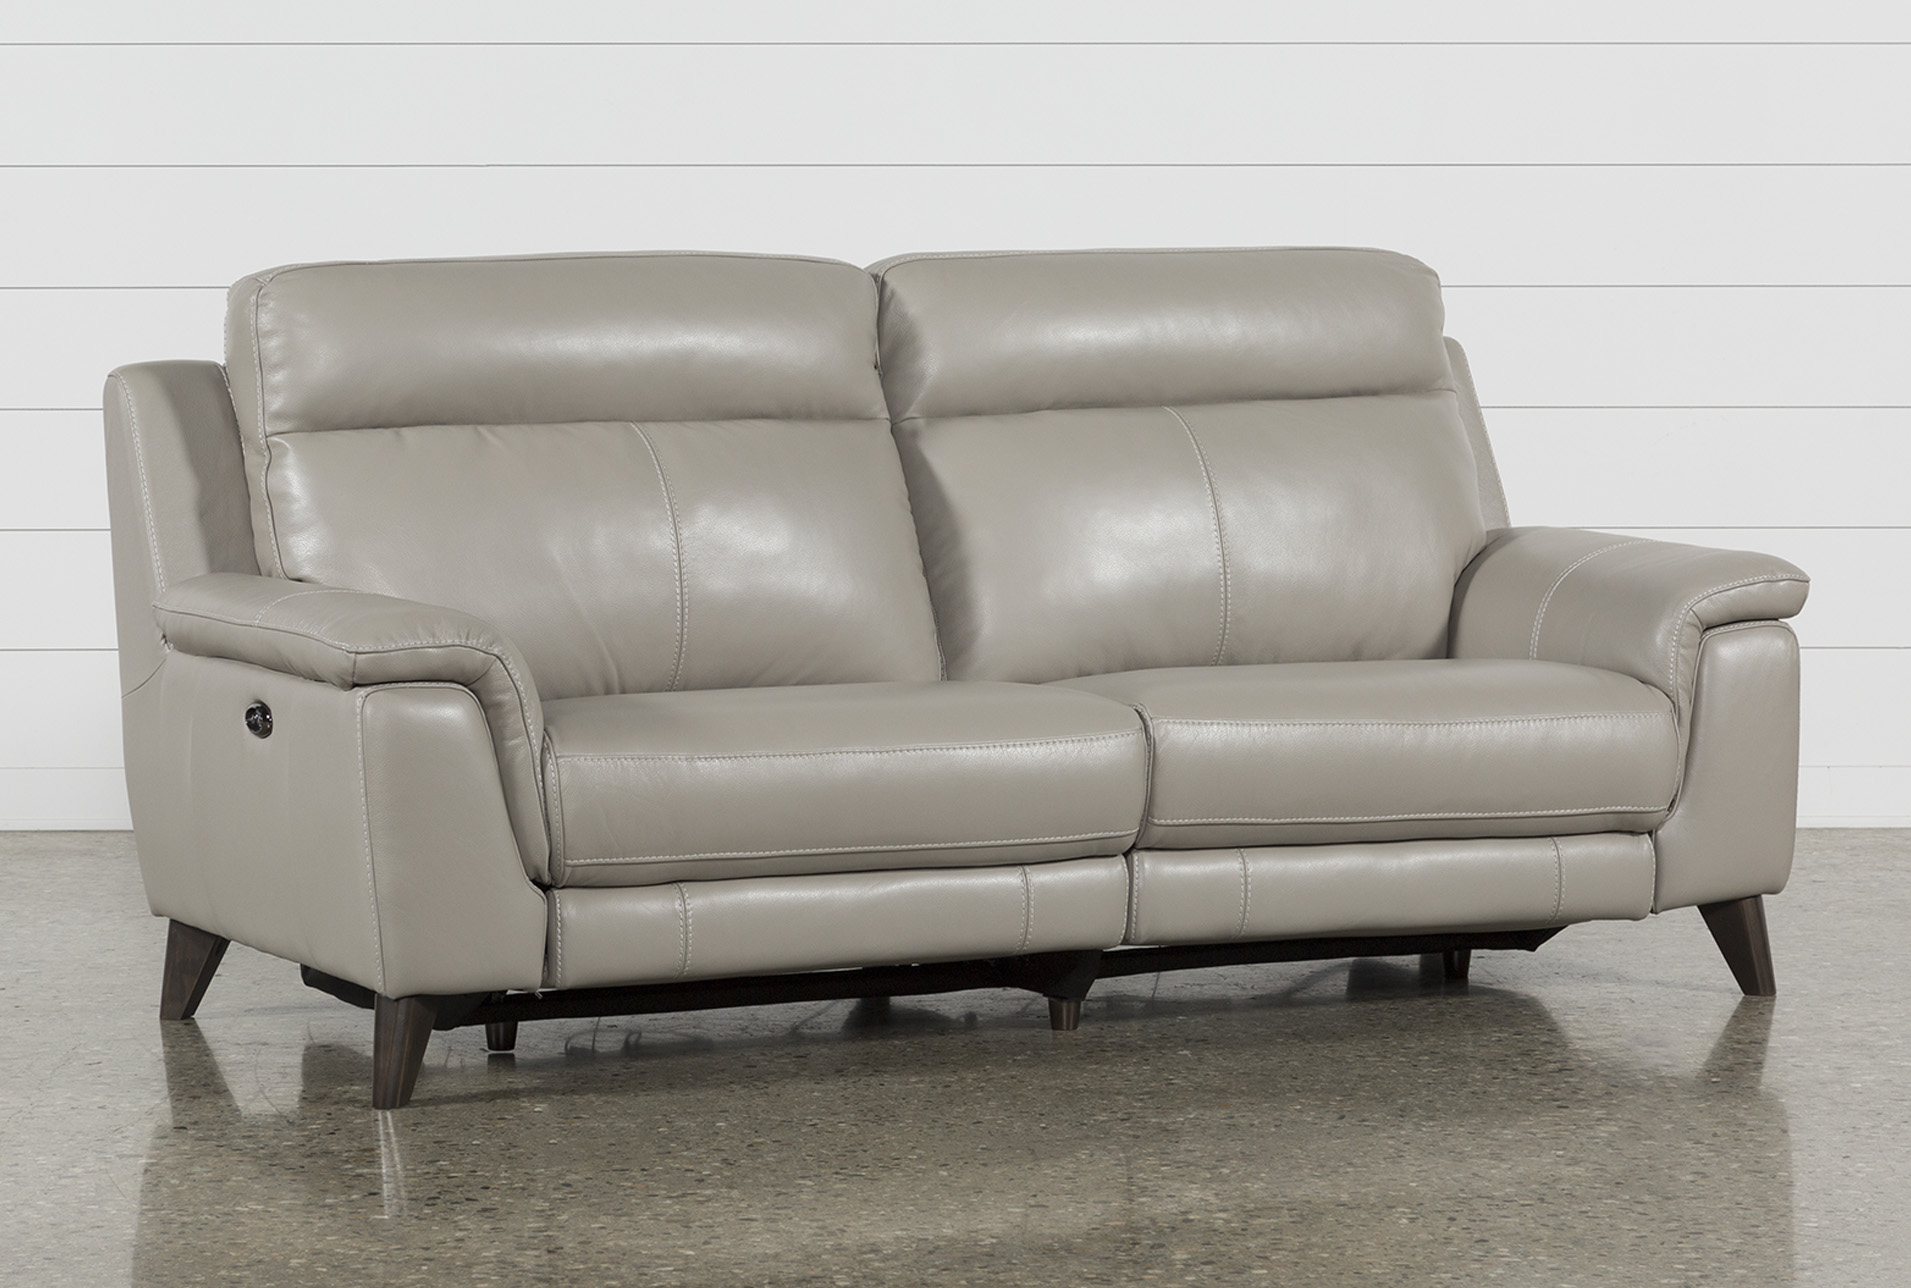 Sofa With Recliner Moana Taupe Leather Dual Power Reclining Sofa With Usb